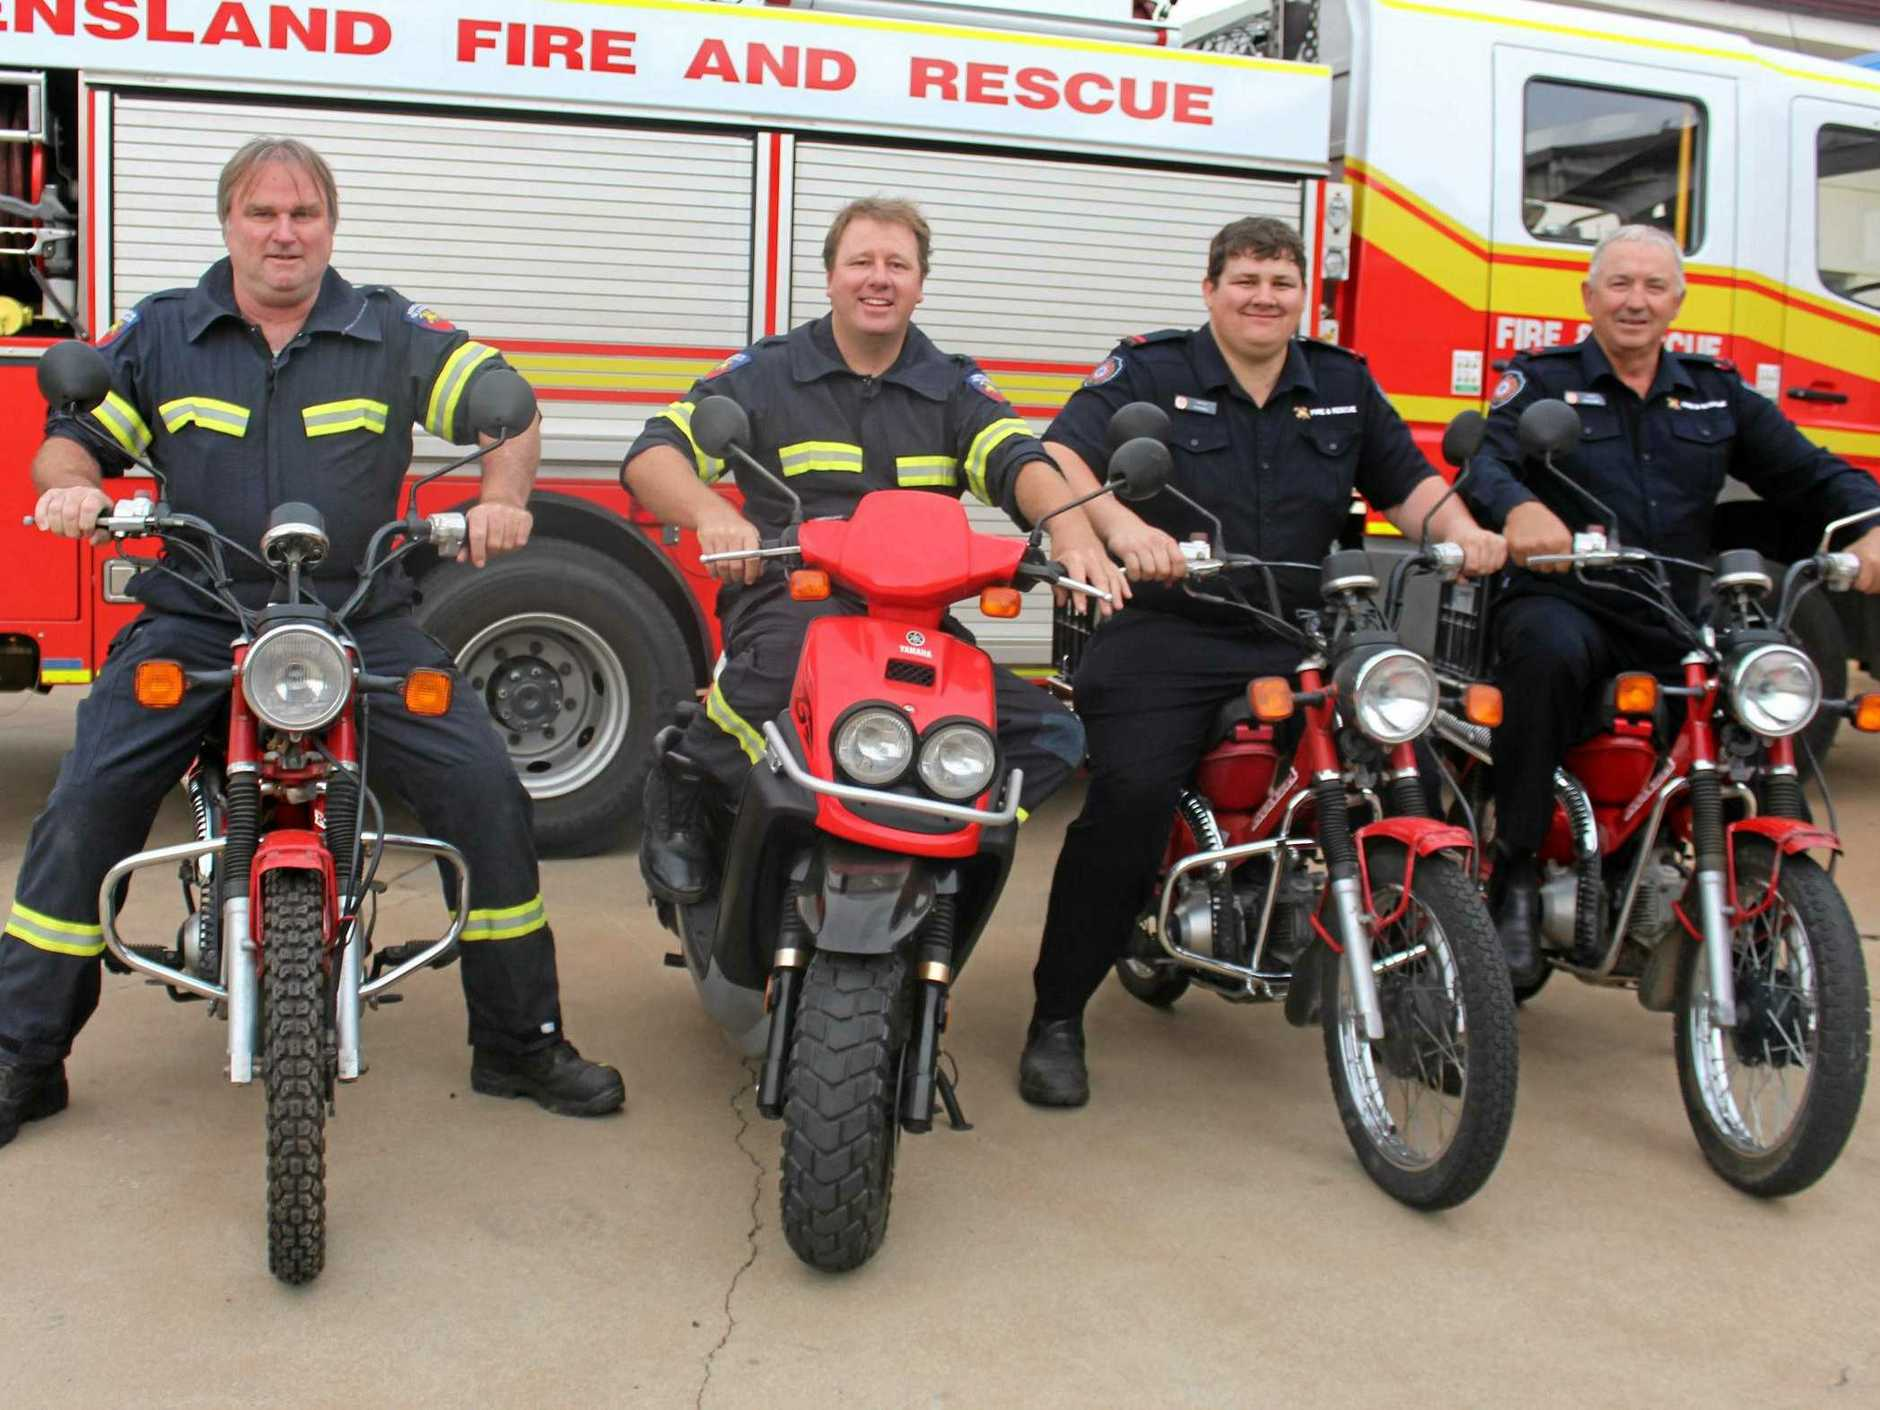 GEARED UP: Mark Vreeken, Luke Ogden, Ryan Hall and Danny Hurt will have their postie bikes in top condition ahead of their big ride through the North Burnett.